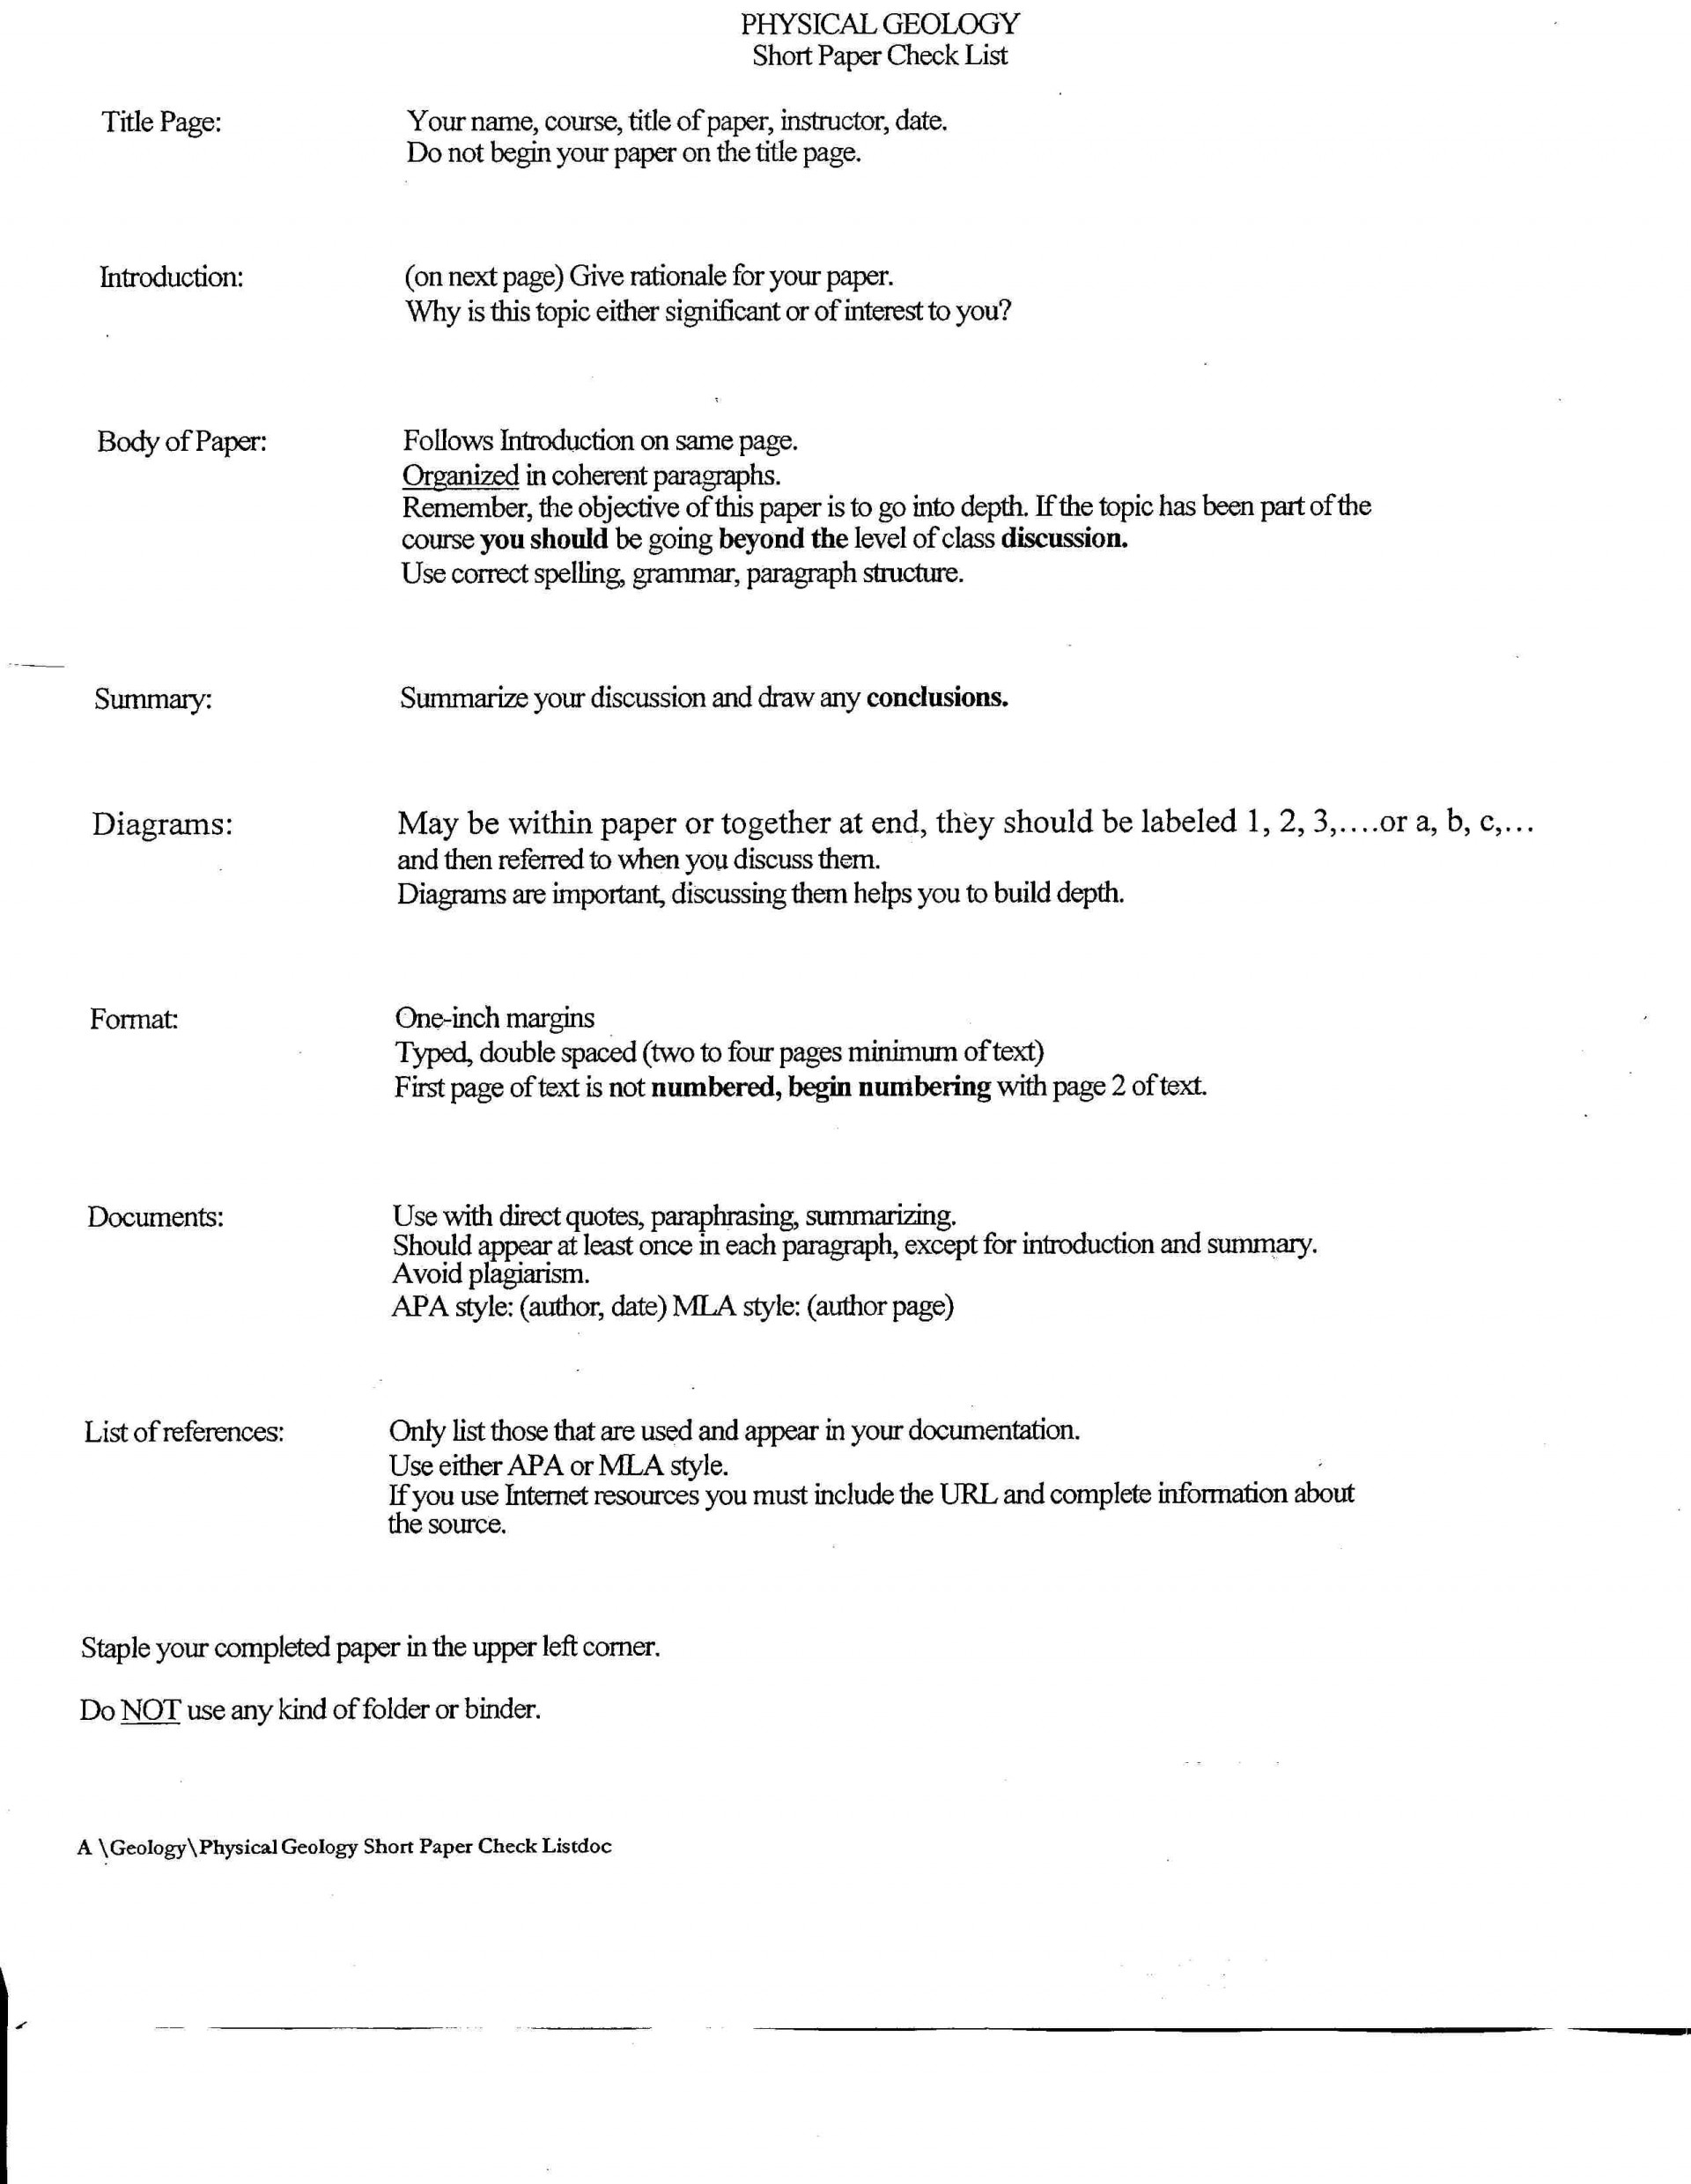 018 Topics For Research Paper Short Checklist Awful In Marketing Law About School Problems 1920